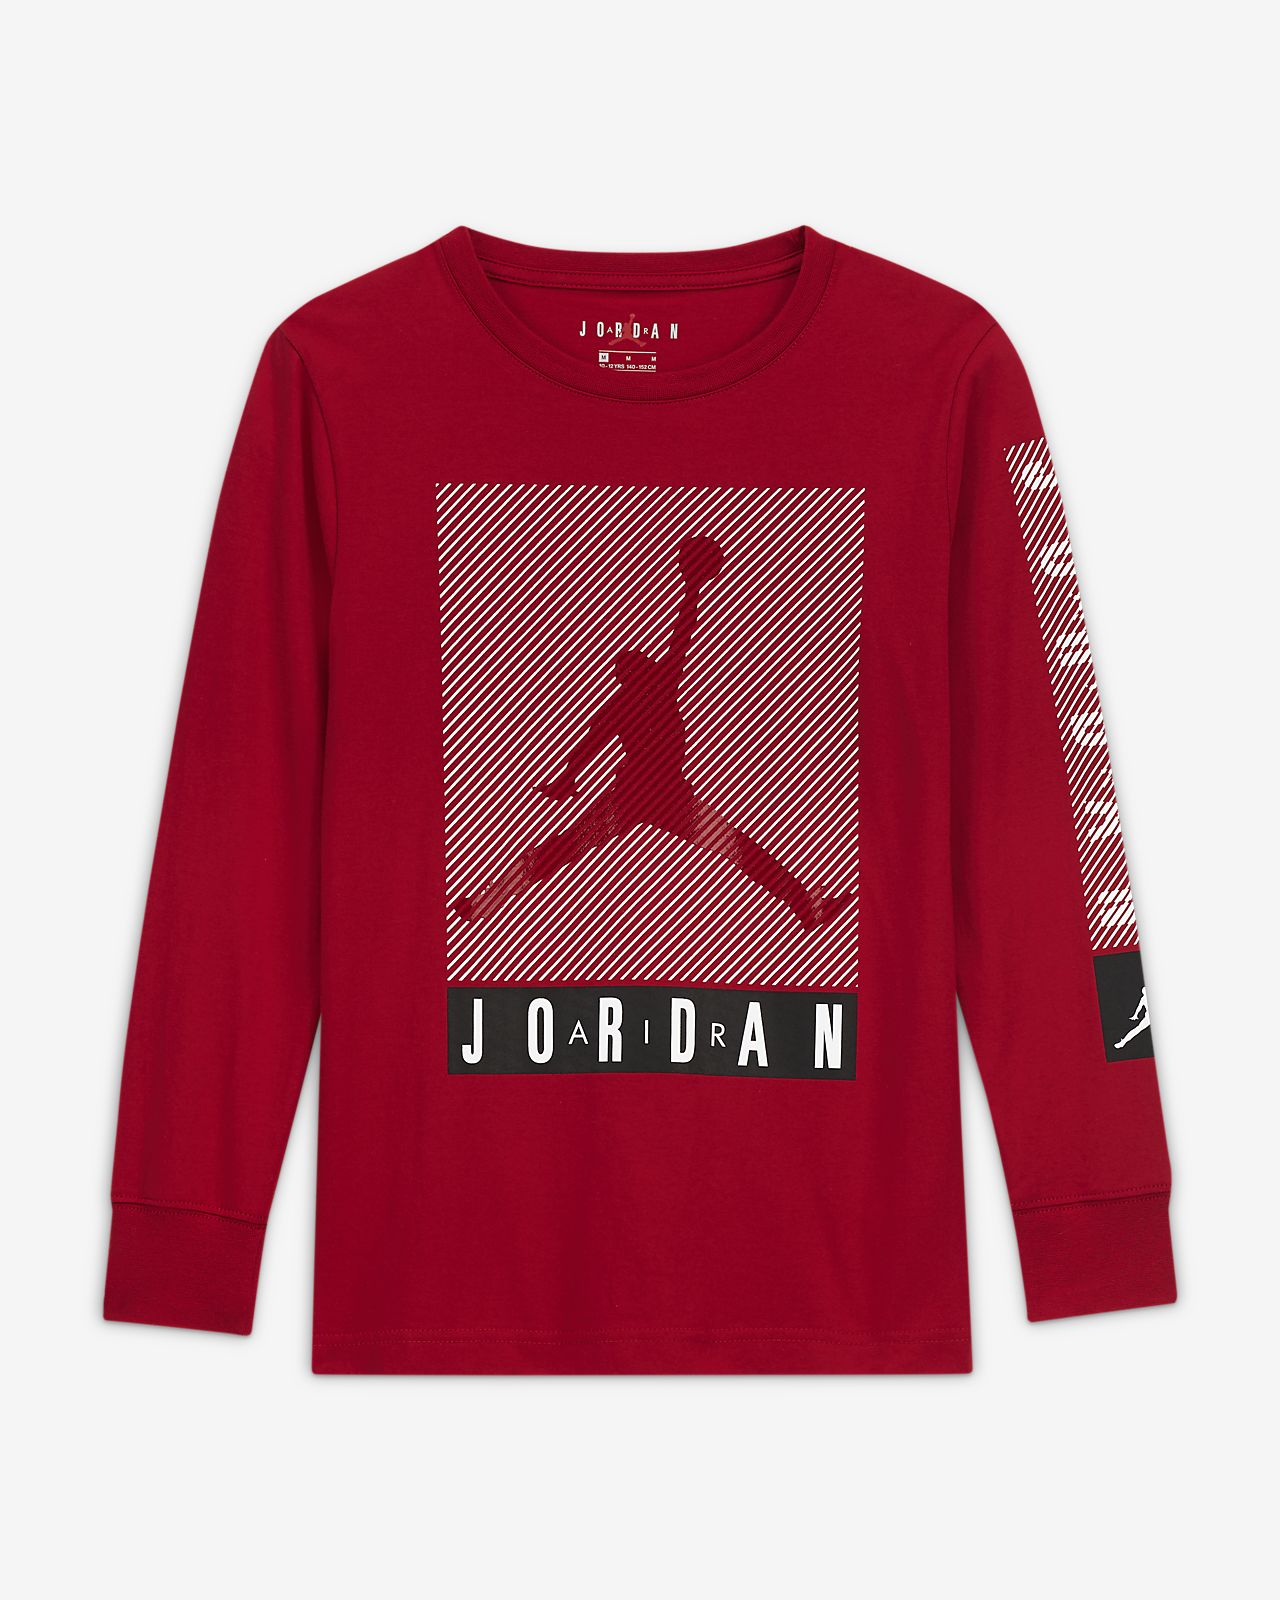 Jordan Big Kids' (Boys') Long-Sleeve T-Shirt